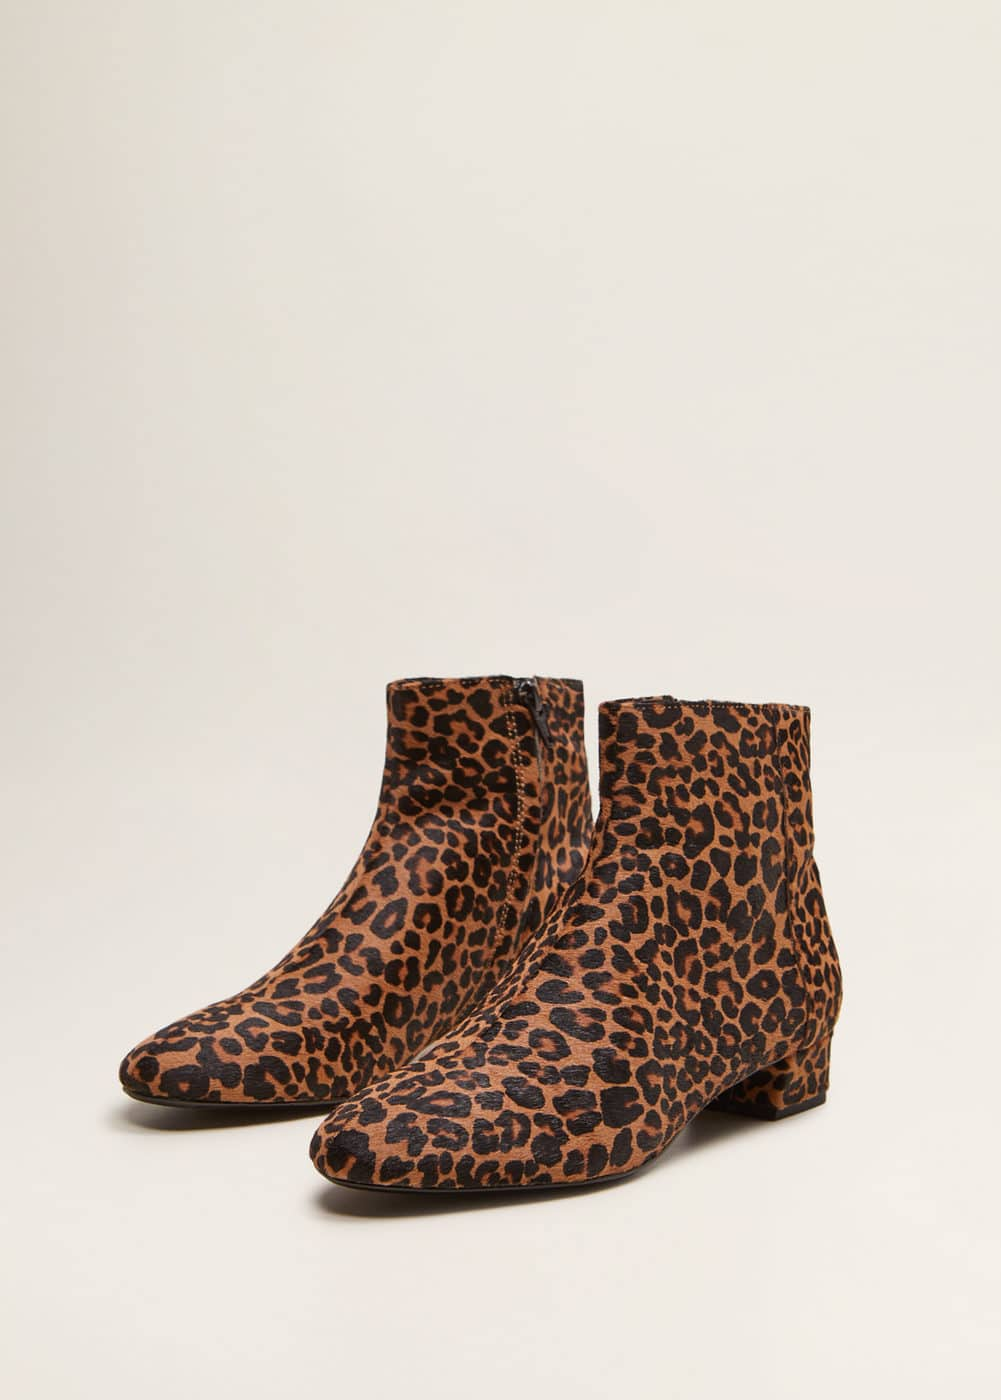 new style 93d27 9a994 Leopard-print leather ankle boots